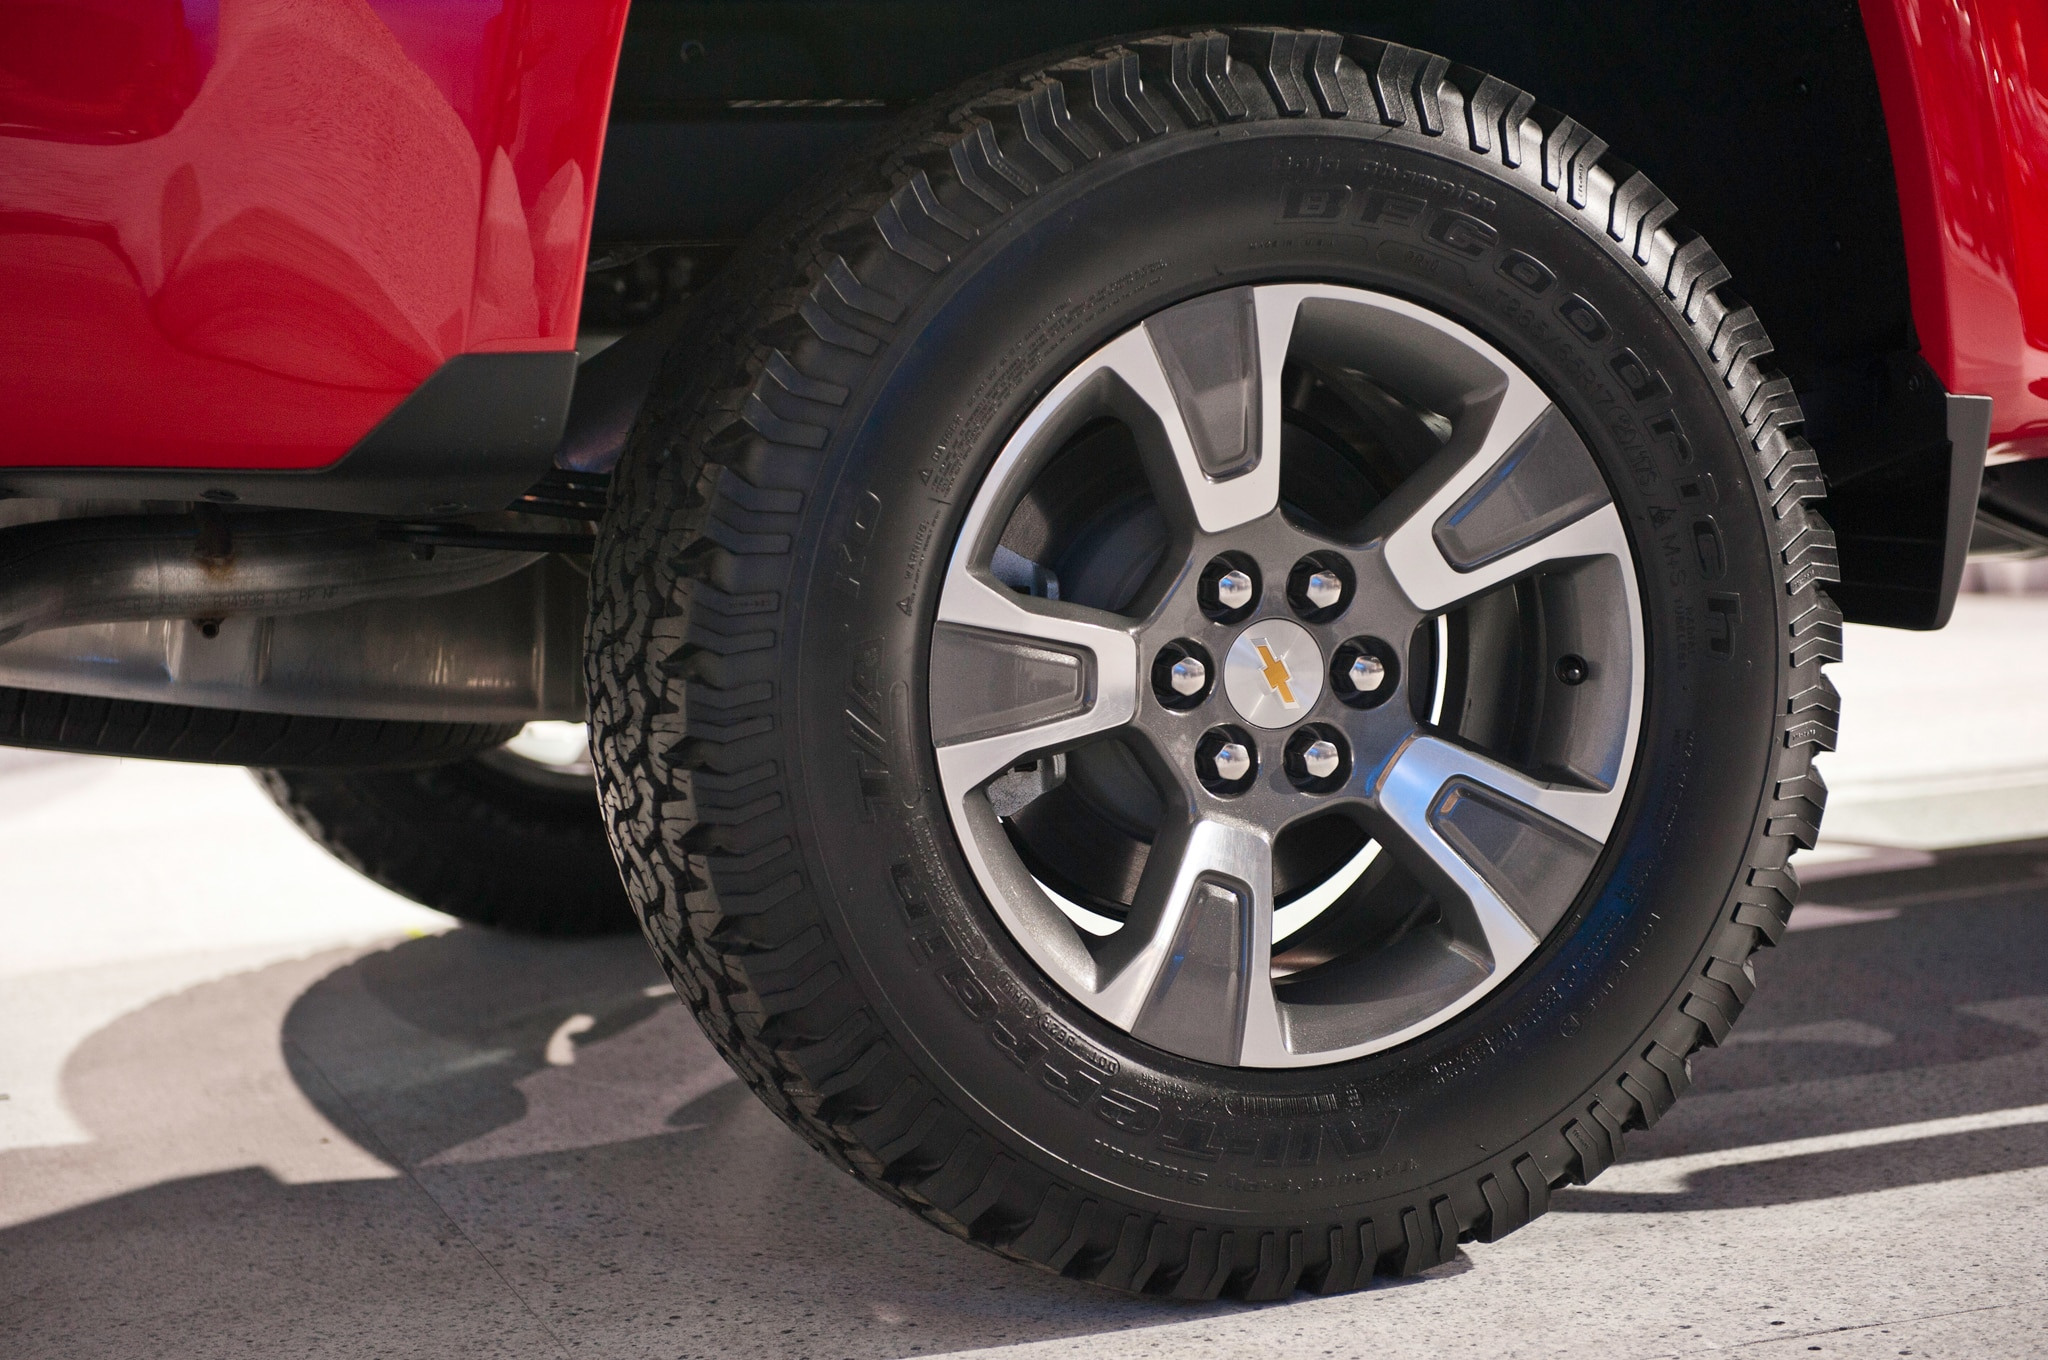 2015 Chevrolet Colorado rear wheels